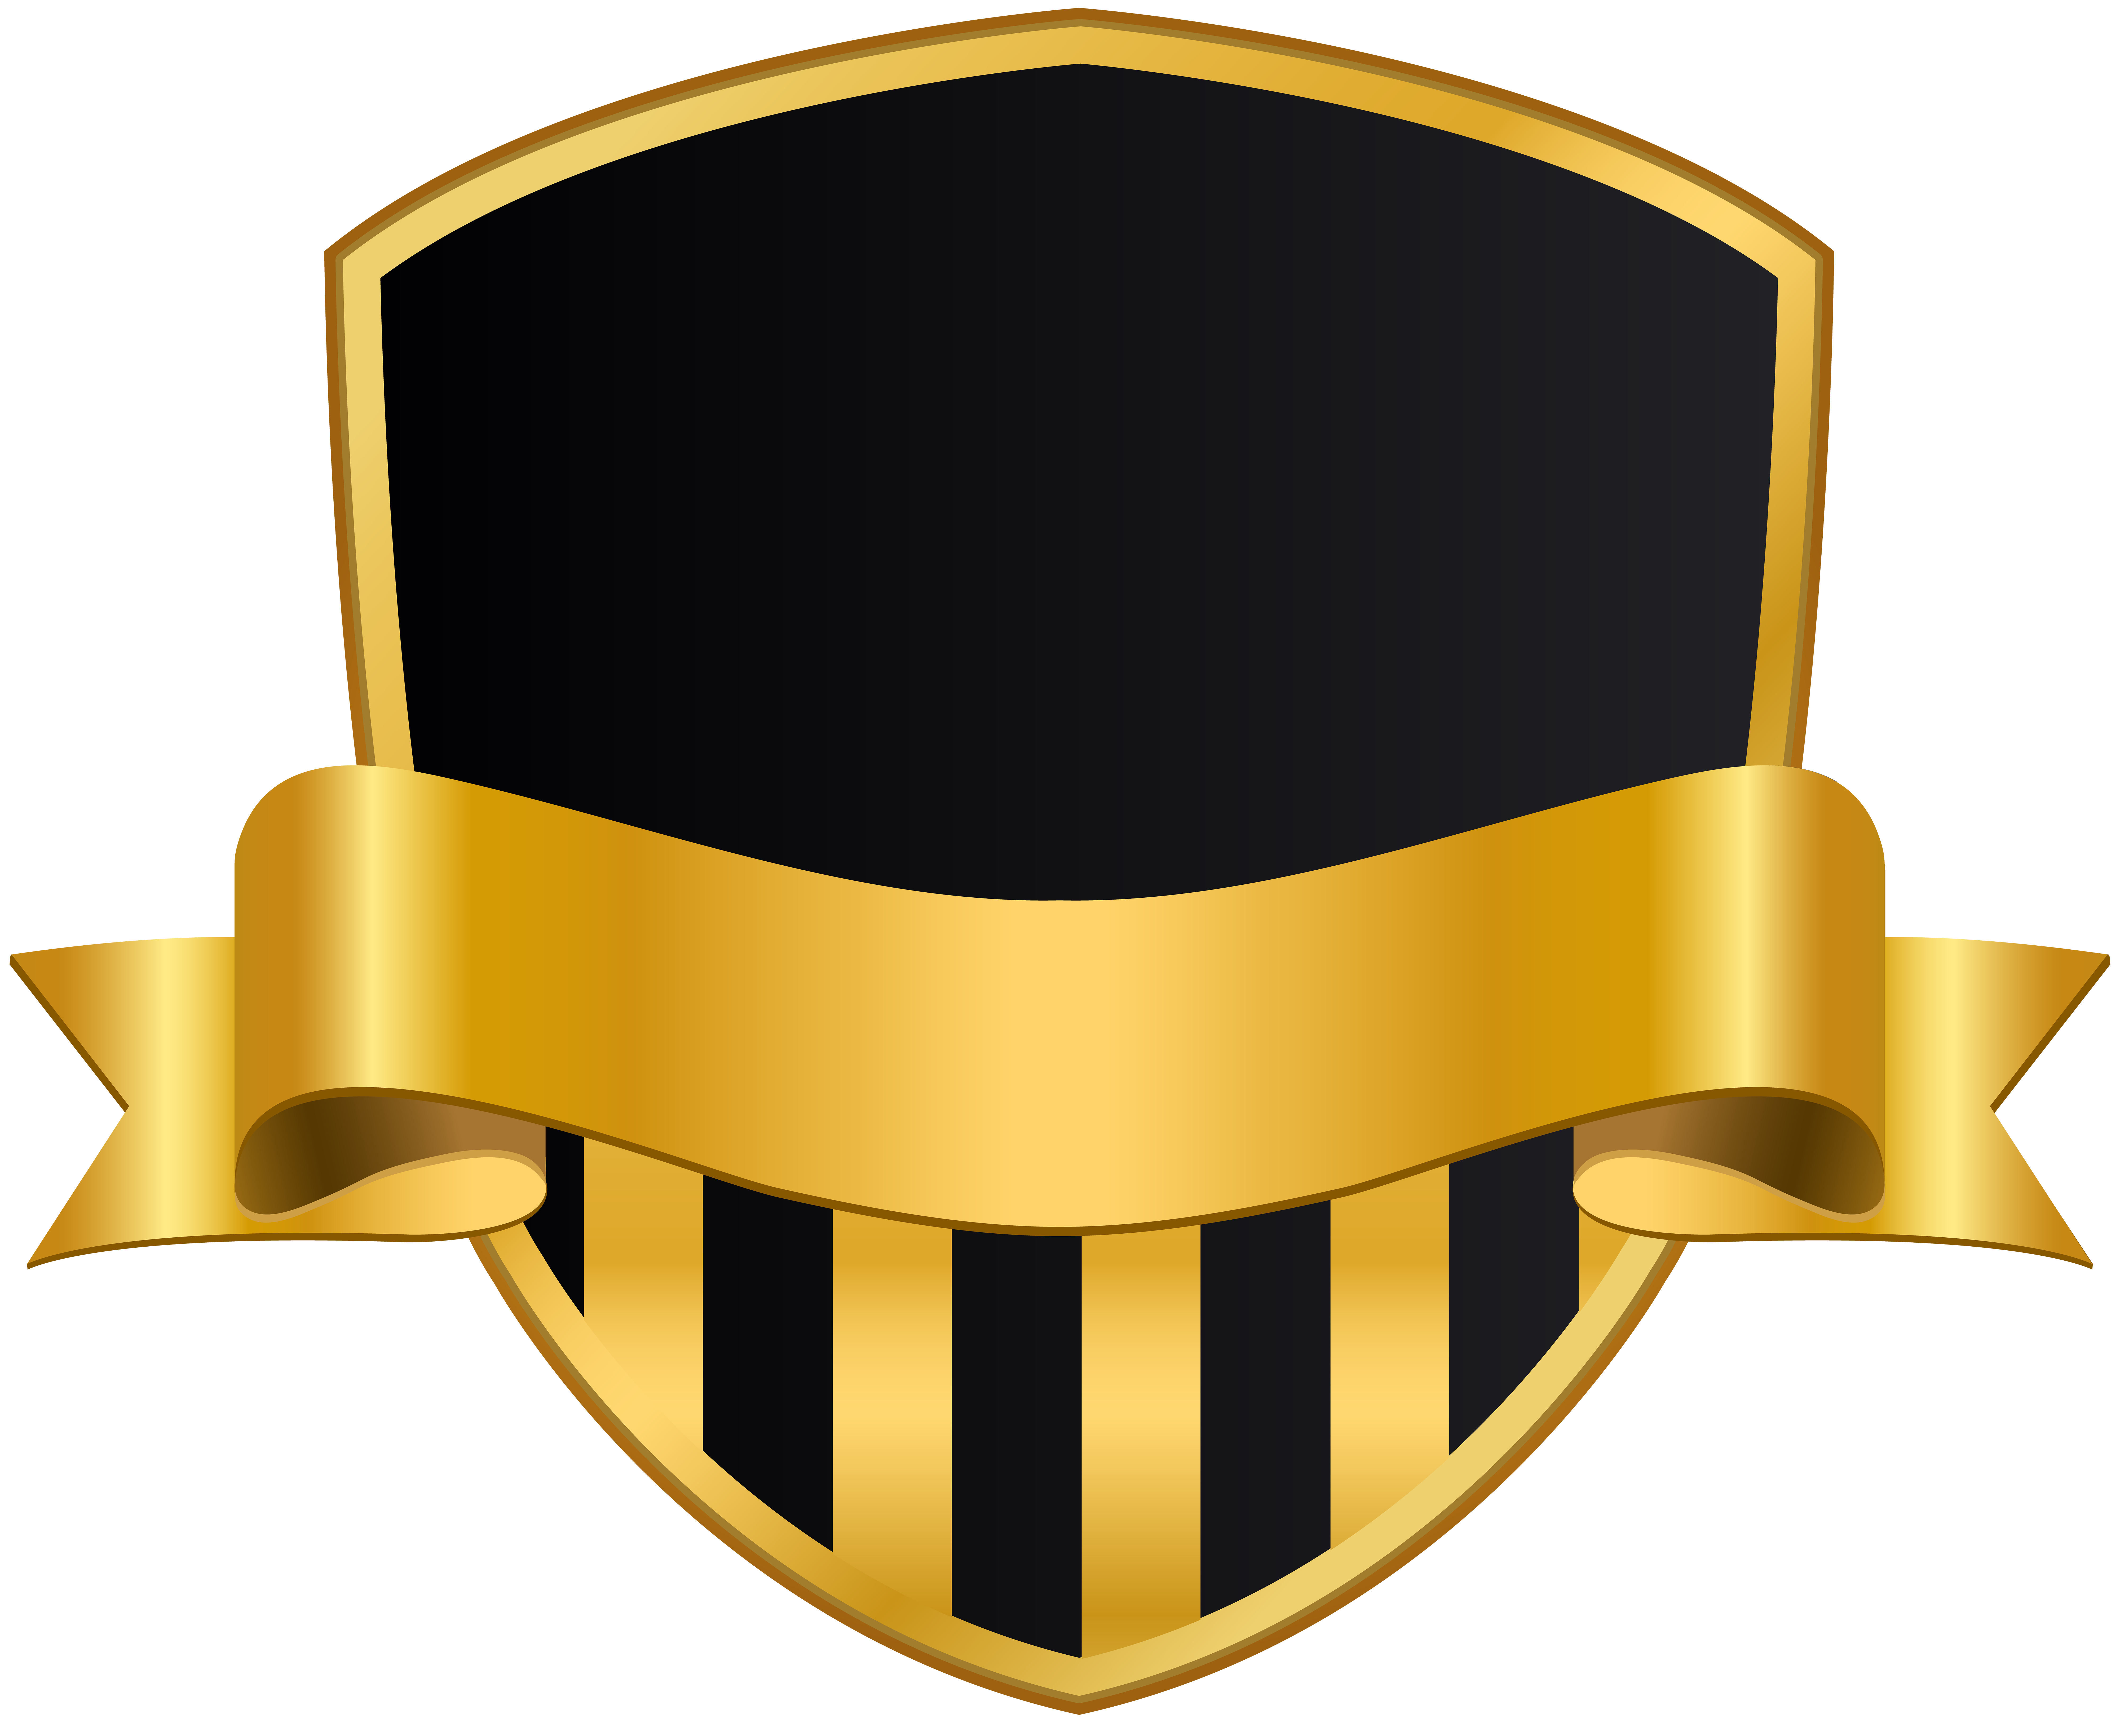 Shield and banner png. Badge with black clip